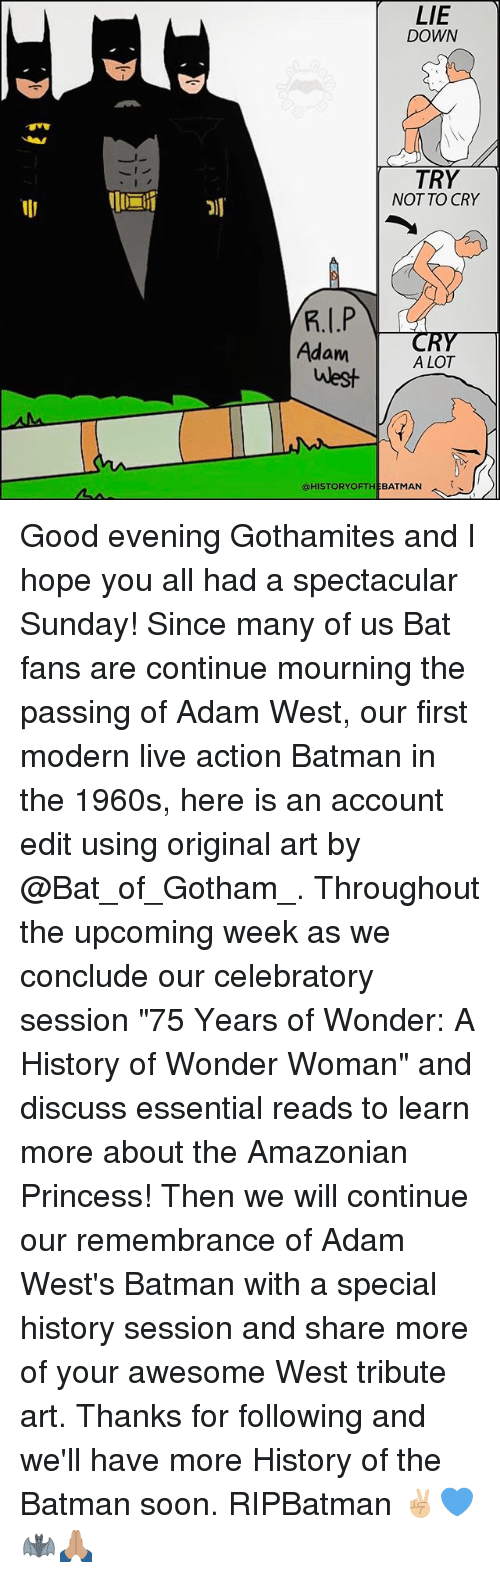 "Batman, Memes, and Soon...: AMA  LIE  DOWN  TRY  NOT TO CRY  Adam  A LOT  west  @HISTORY OFTHE BATMAN Good evening Gothamites and I hope you all had a spectacular Sunday! Since many of us Bat fans are continue mourning the passing of Adam West, our first modern live action Batman in the 1960s, here is an account edit using original art by @Bat_of_Gotham_. Throughout the upcoming week as we conclude our celebratory session ""75 Years of Wonder: A History of Wonder Woman"" and discuss essential reads to learn more about the Amazonian Princess! Then we will continue our remembrance of Adam West's Batman with a special history session and share more of your awesome West tribute art. Thanks for following and we'll have more History of the Batman soon. RIPBatman ✌🏼💙🦇🙏🏽"